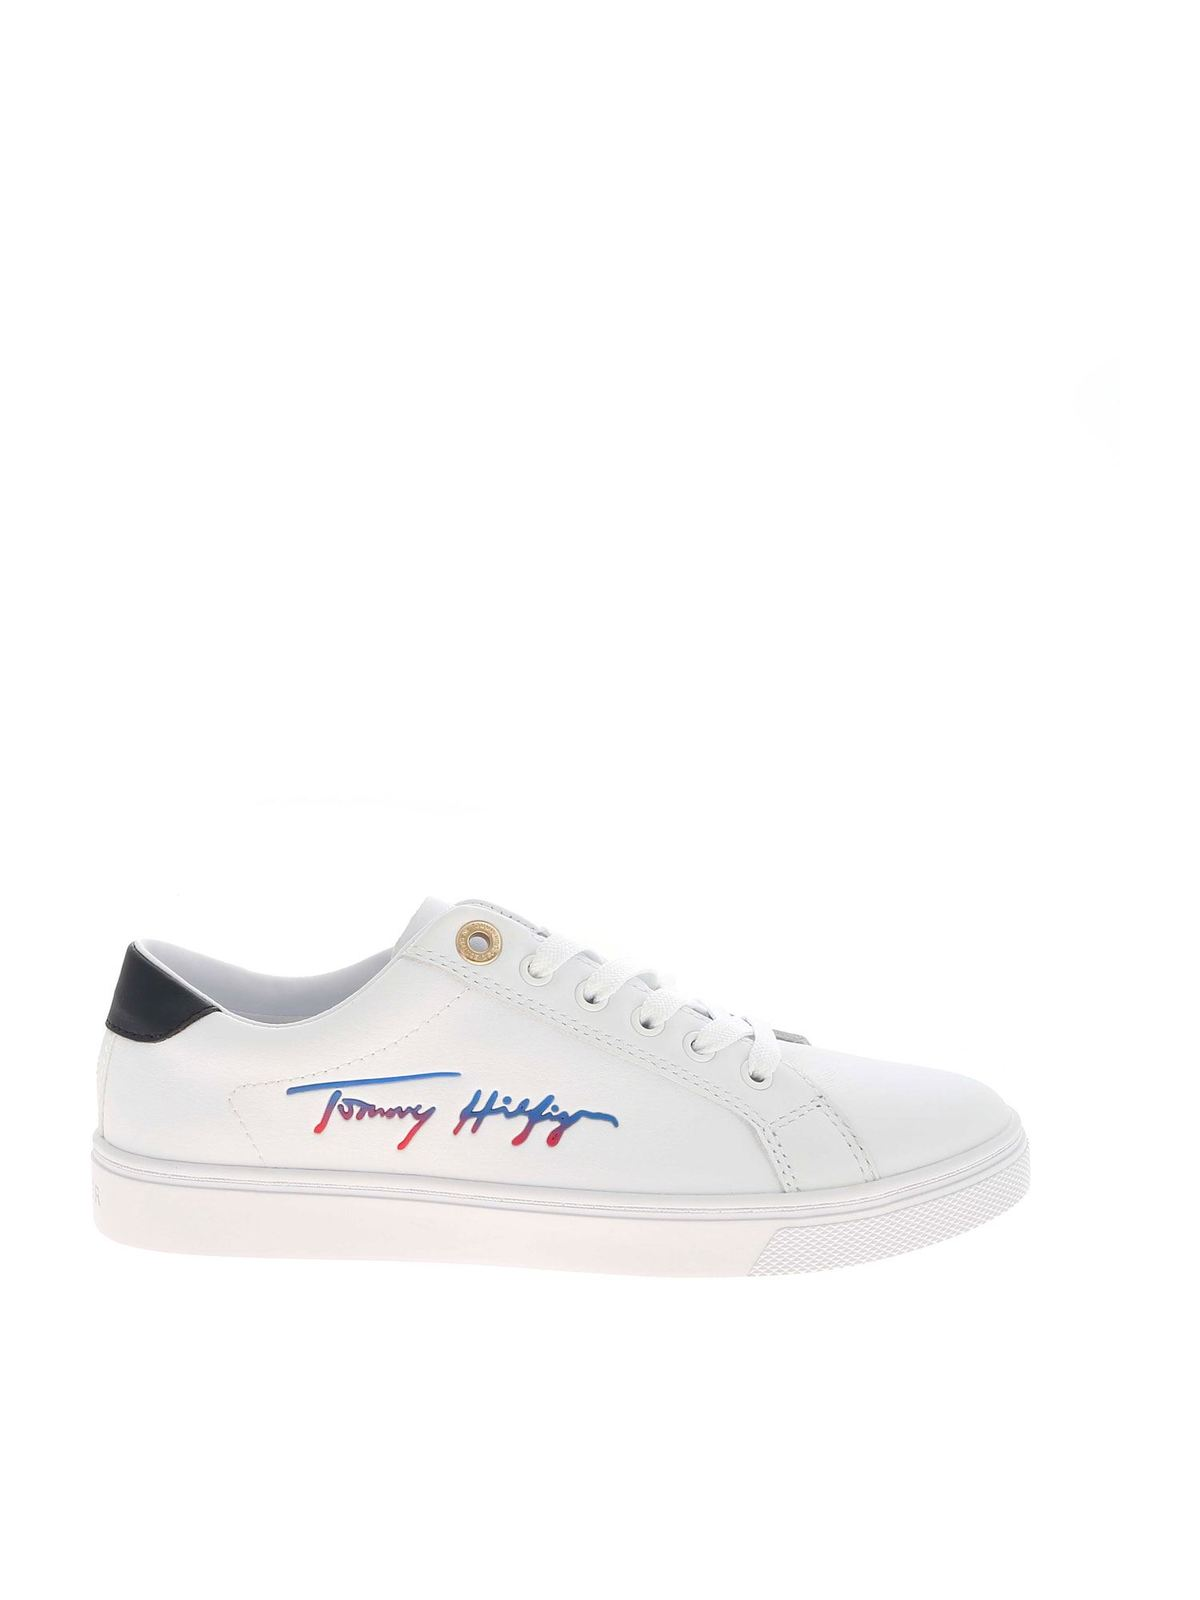 Tommy Hilfiger LOGO SIGNATURE SNEAKERS IN WHITE